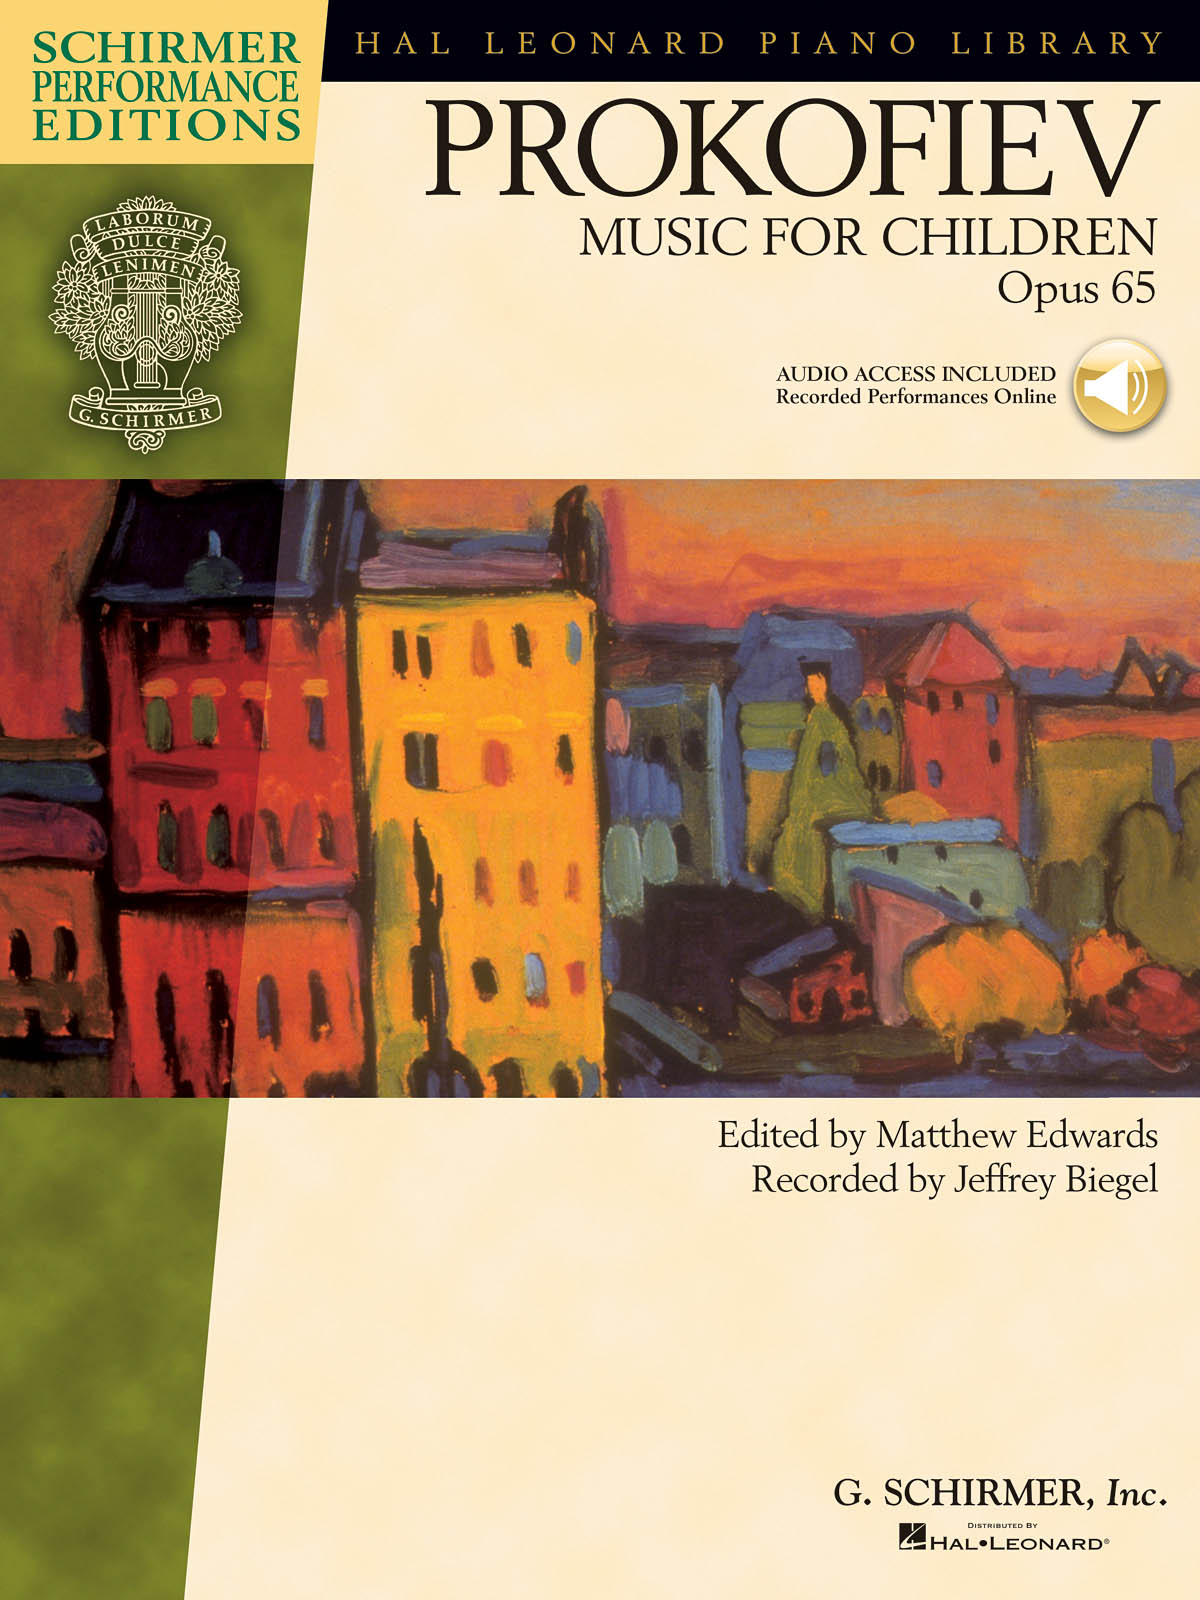 Prokofiev: Music for Children, Op. 65